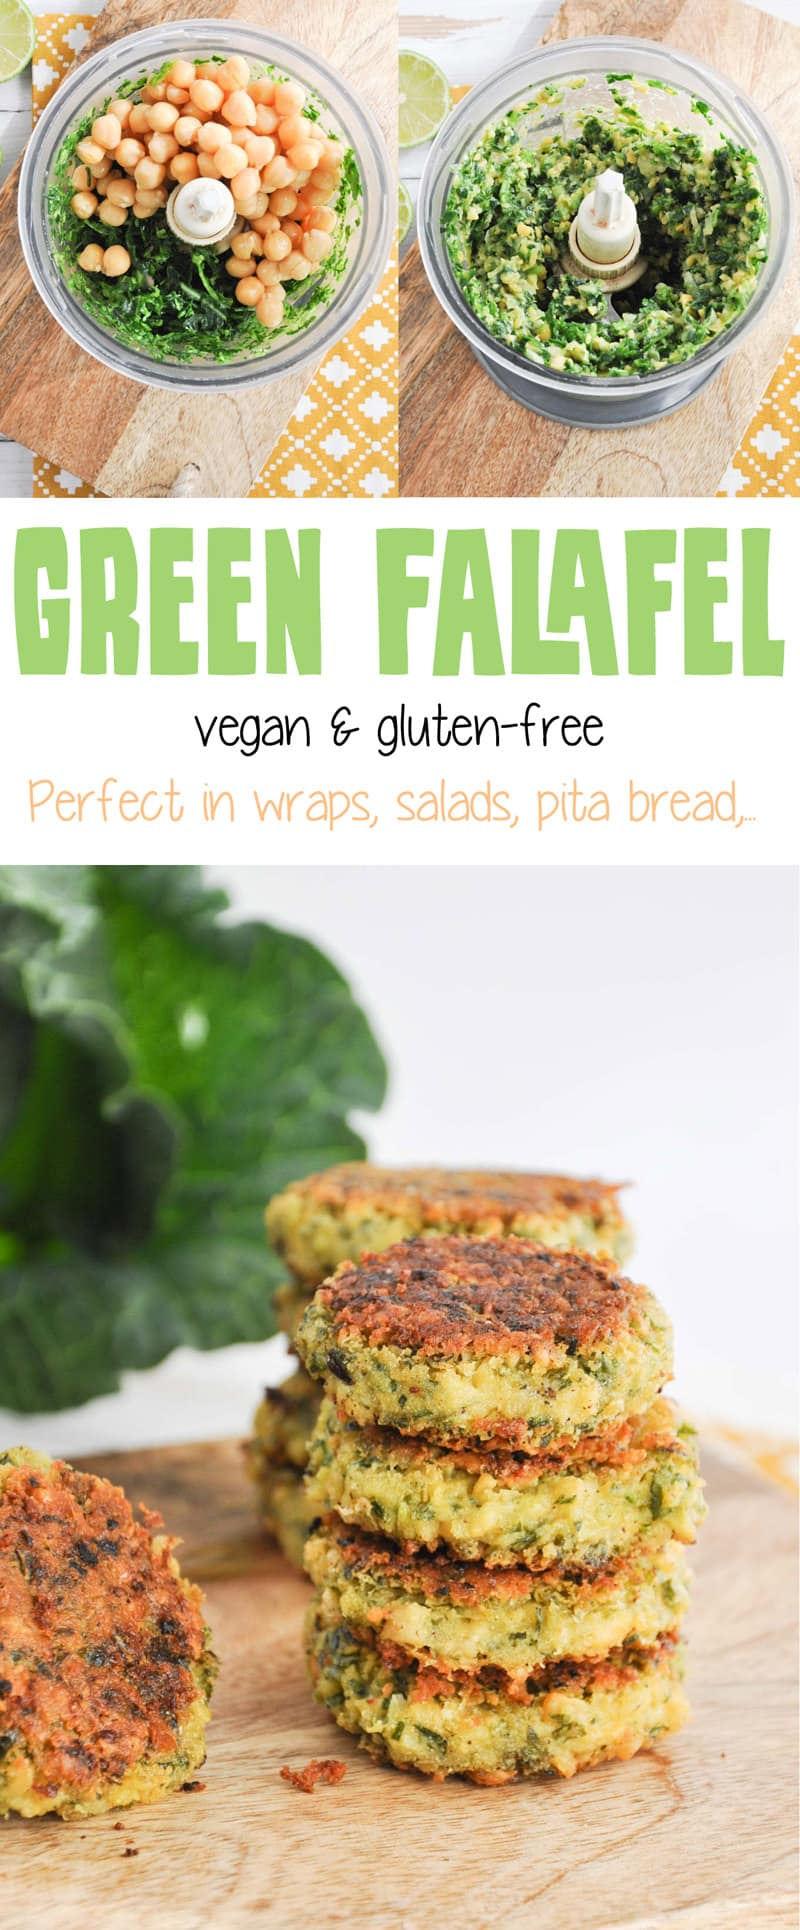 Vegan and gluten-free Green Falafel made with canned chickpeas | ElephantasticVegan.com #vegan #glutenfree #falafel